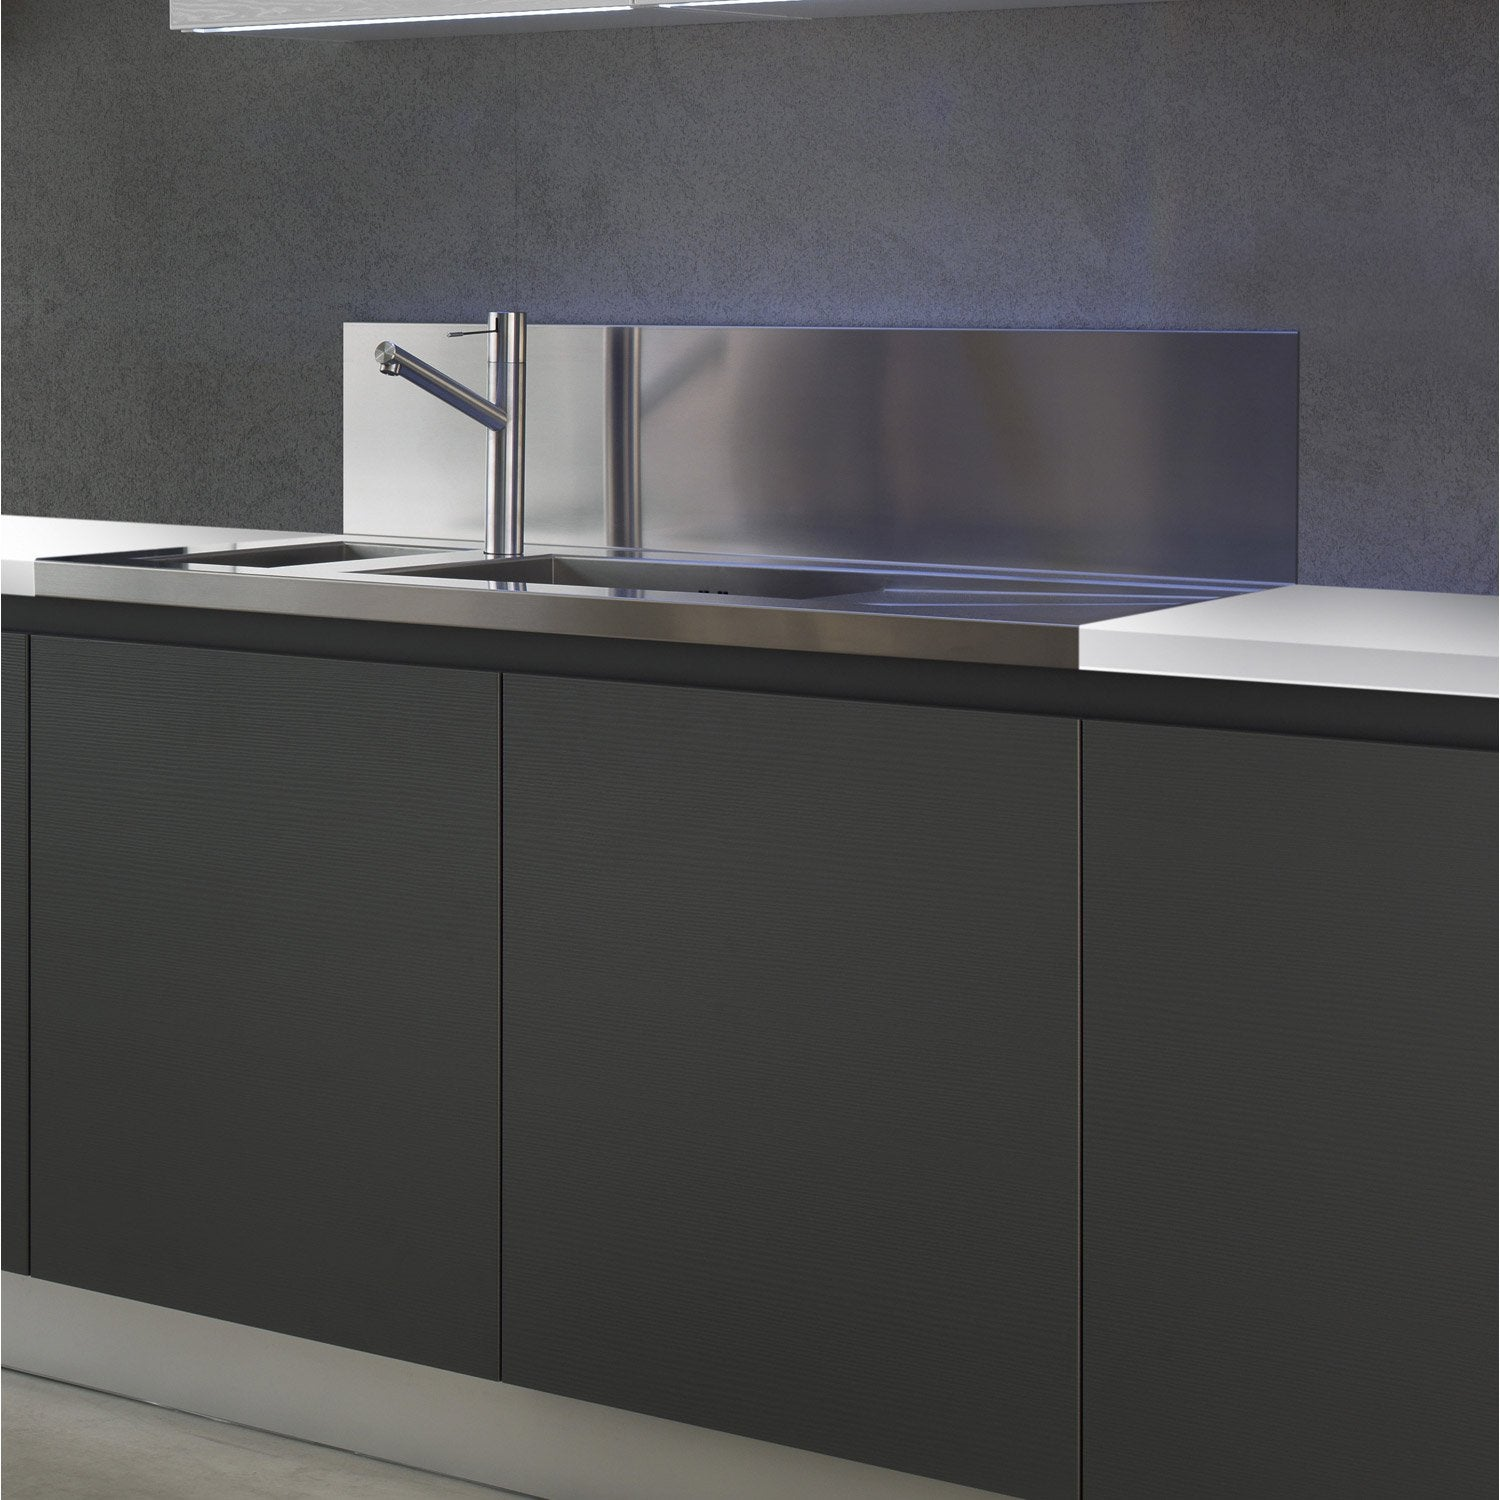 Protege Mur Cuisson protection évier en inox, anti-traces   leroy merlin